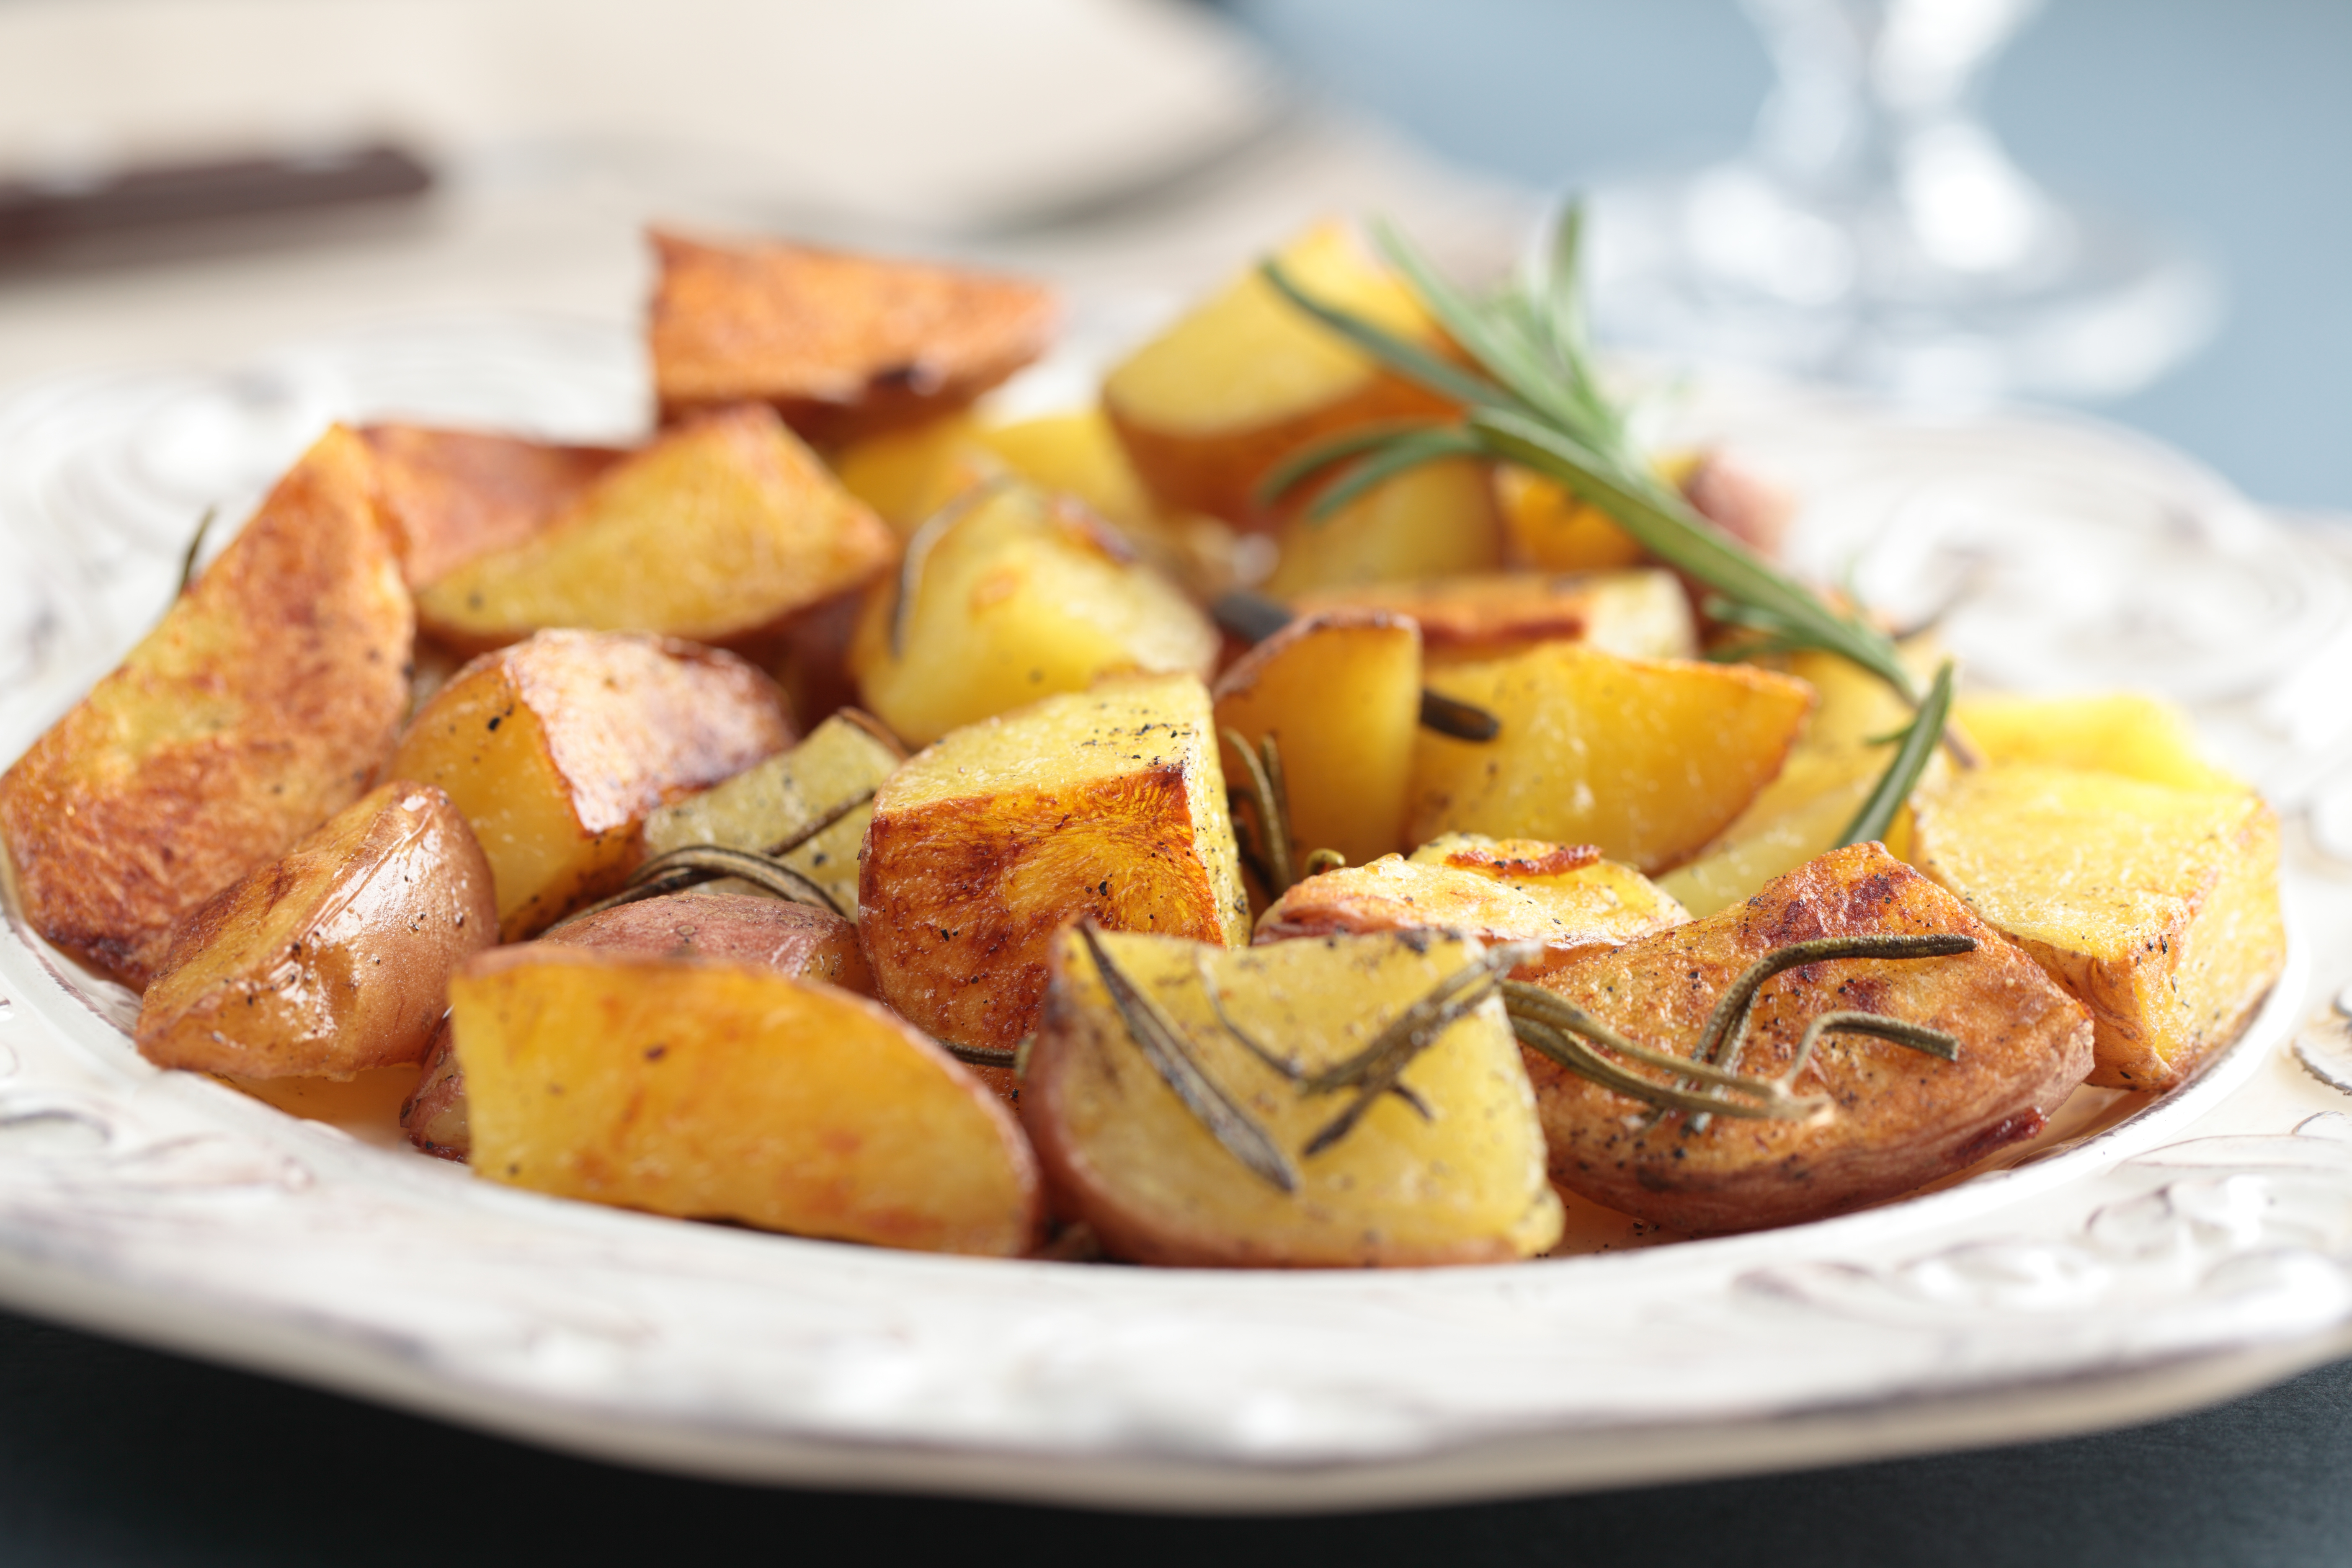 Recipes Course Side Dish Potatoes Oven Roasted Red Potatoes with ...